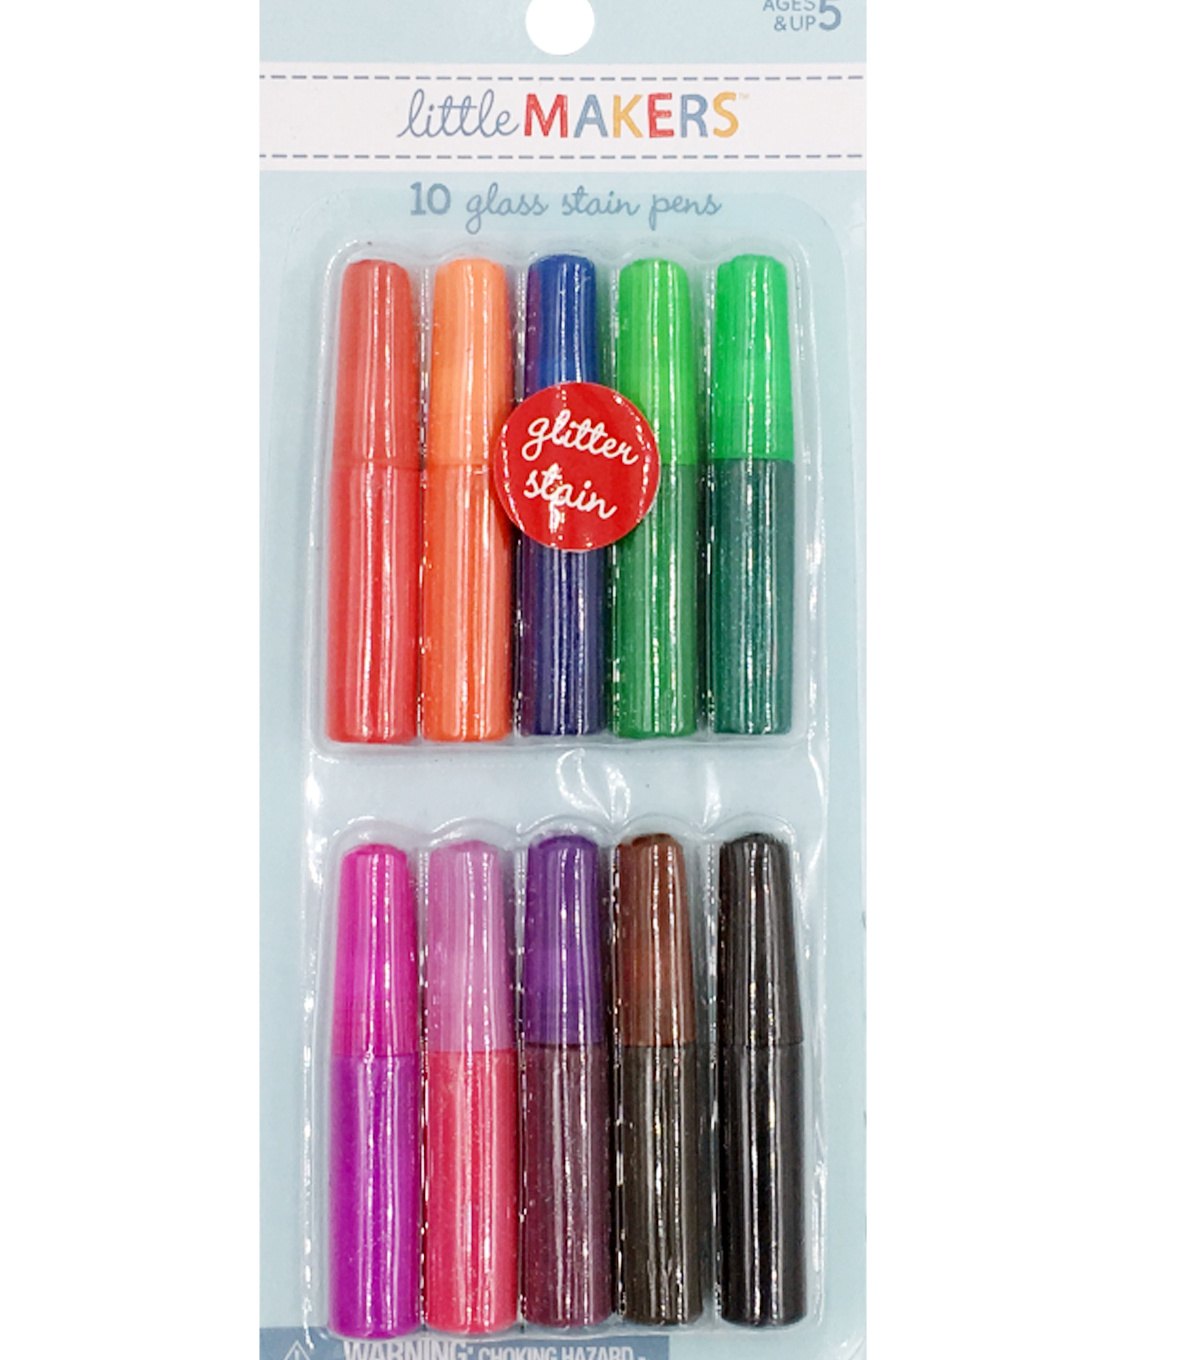 Little Makers 10pc Glass Stain Pens